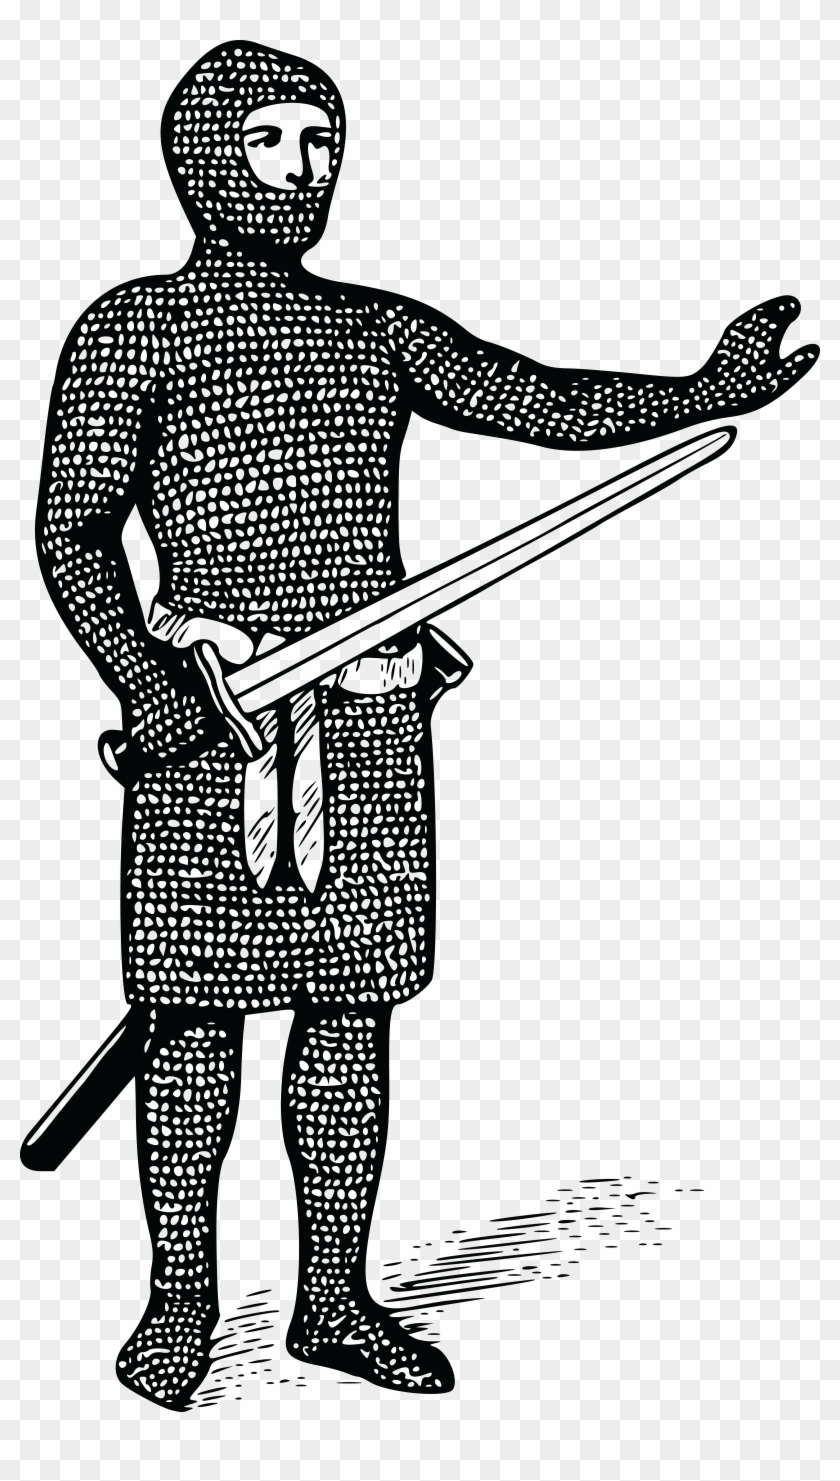 Free Clipart Of A Guard In Chain Maile - Mail Coat #78174